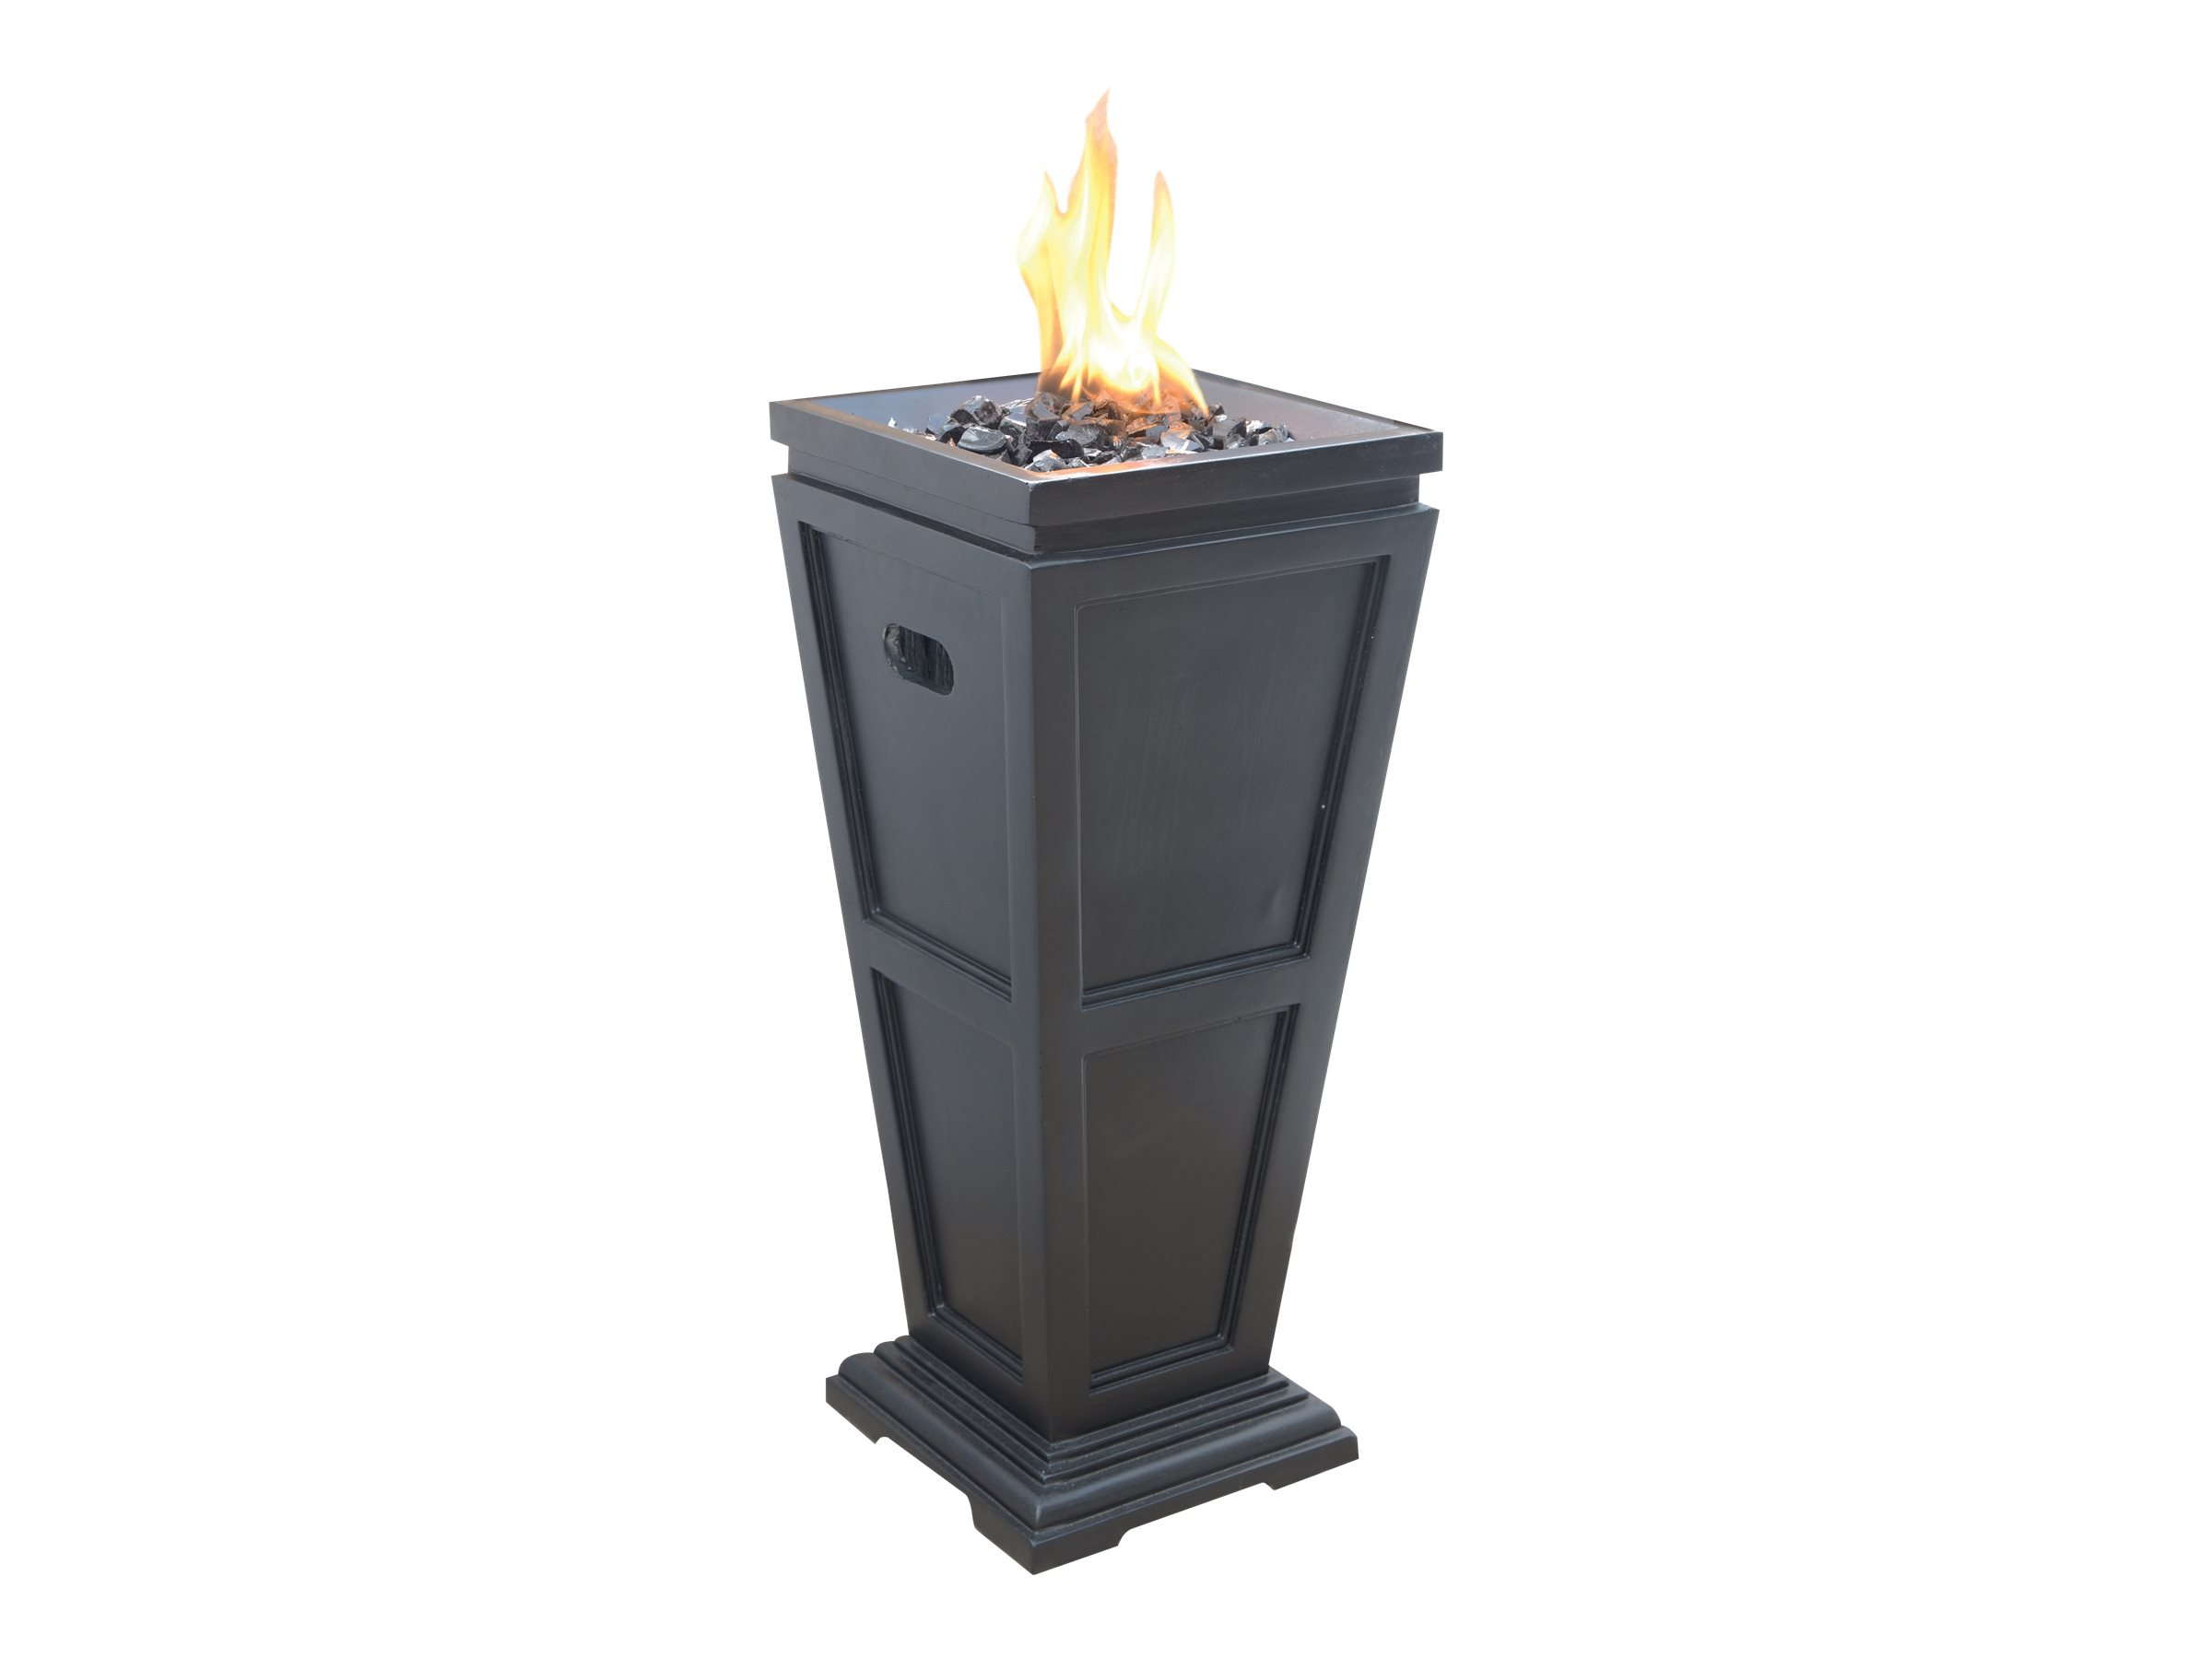 UniFlame LP Gas Fire Pit Column, Medium - Walmart.com